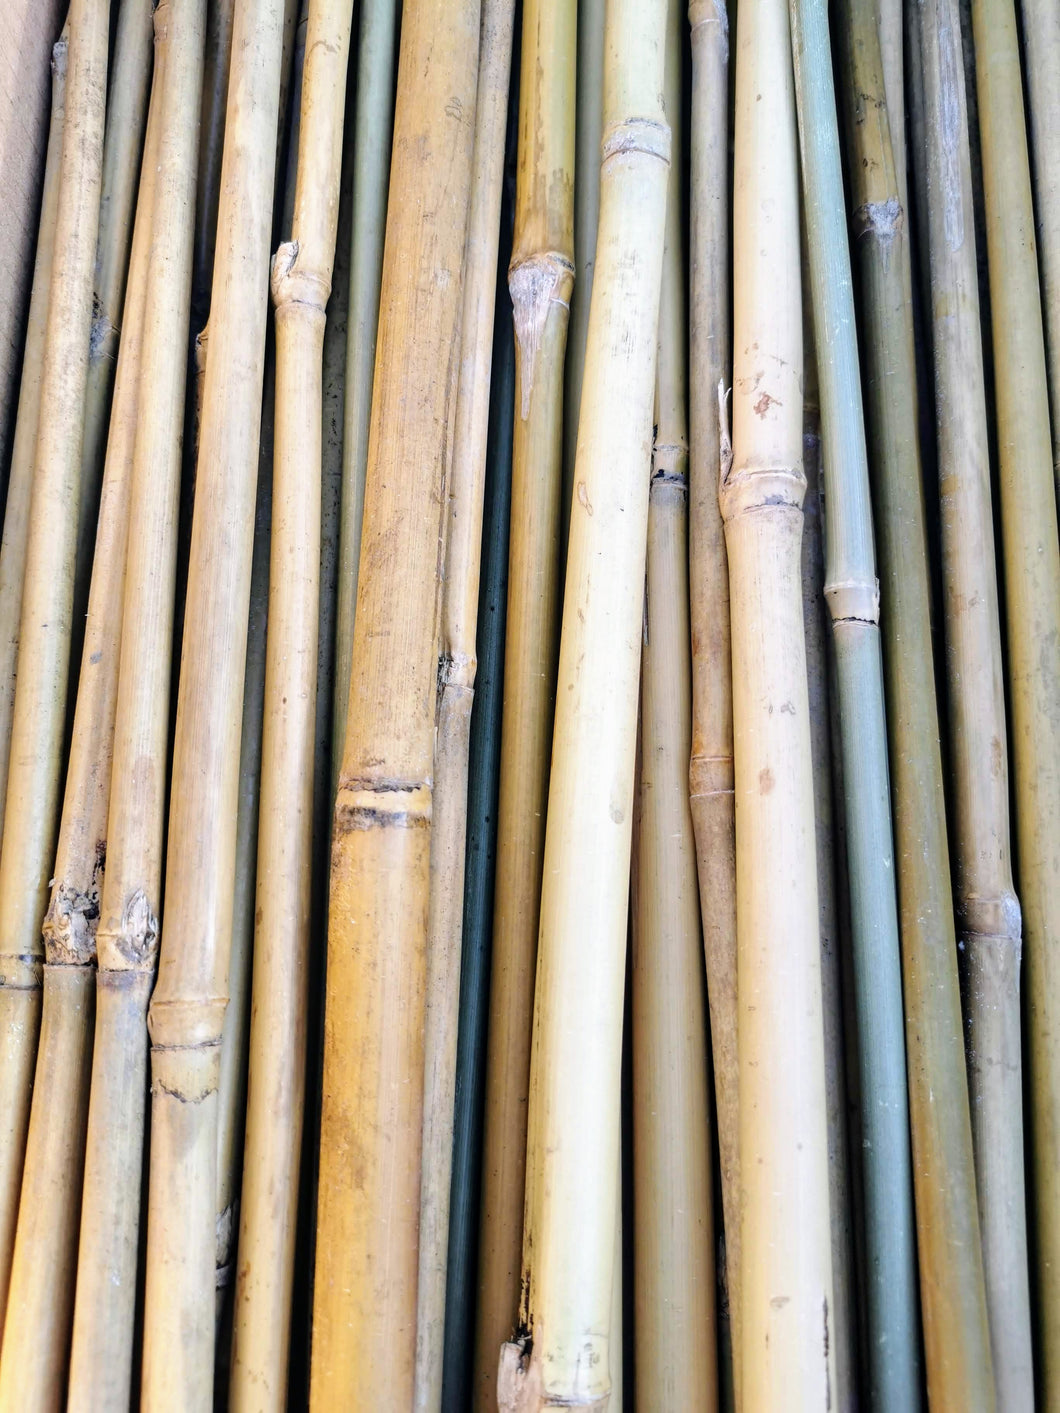 Bamboo stakes 65cm 10-12mm thick - 200 pack